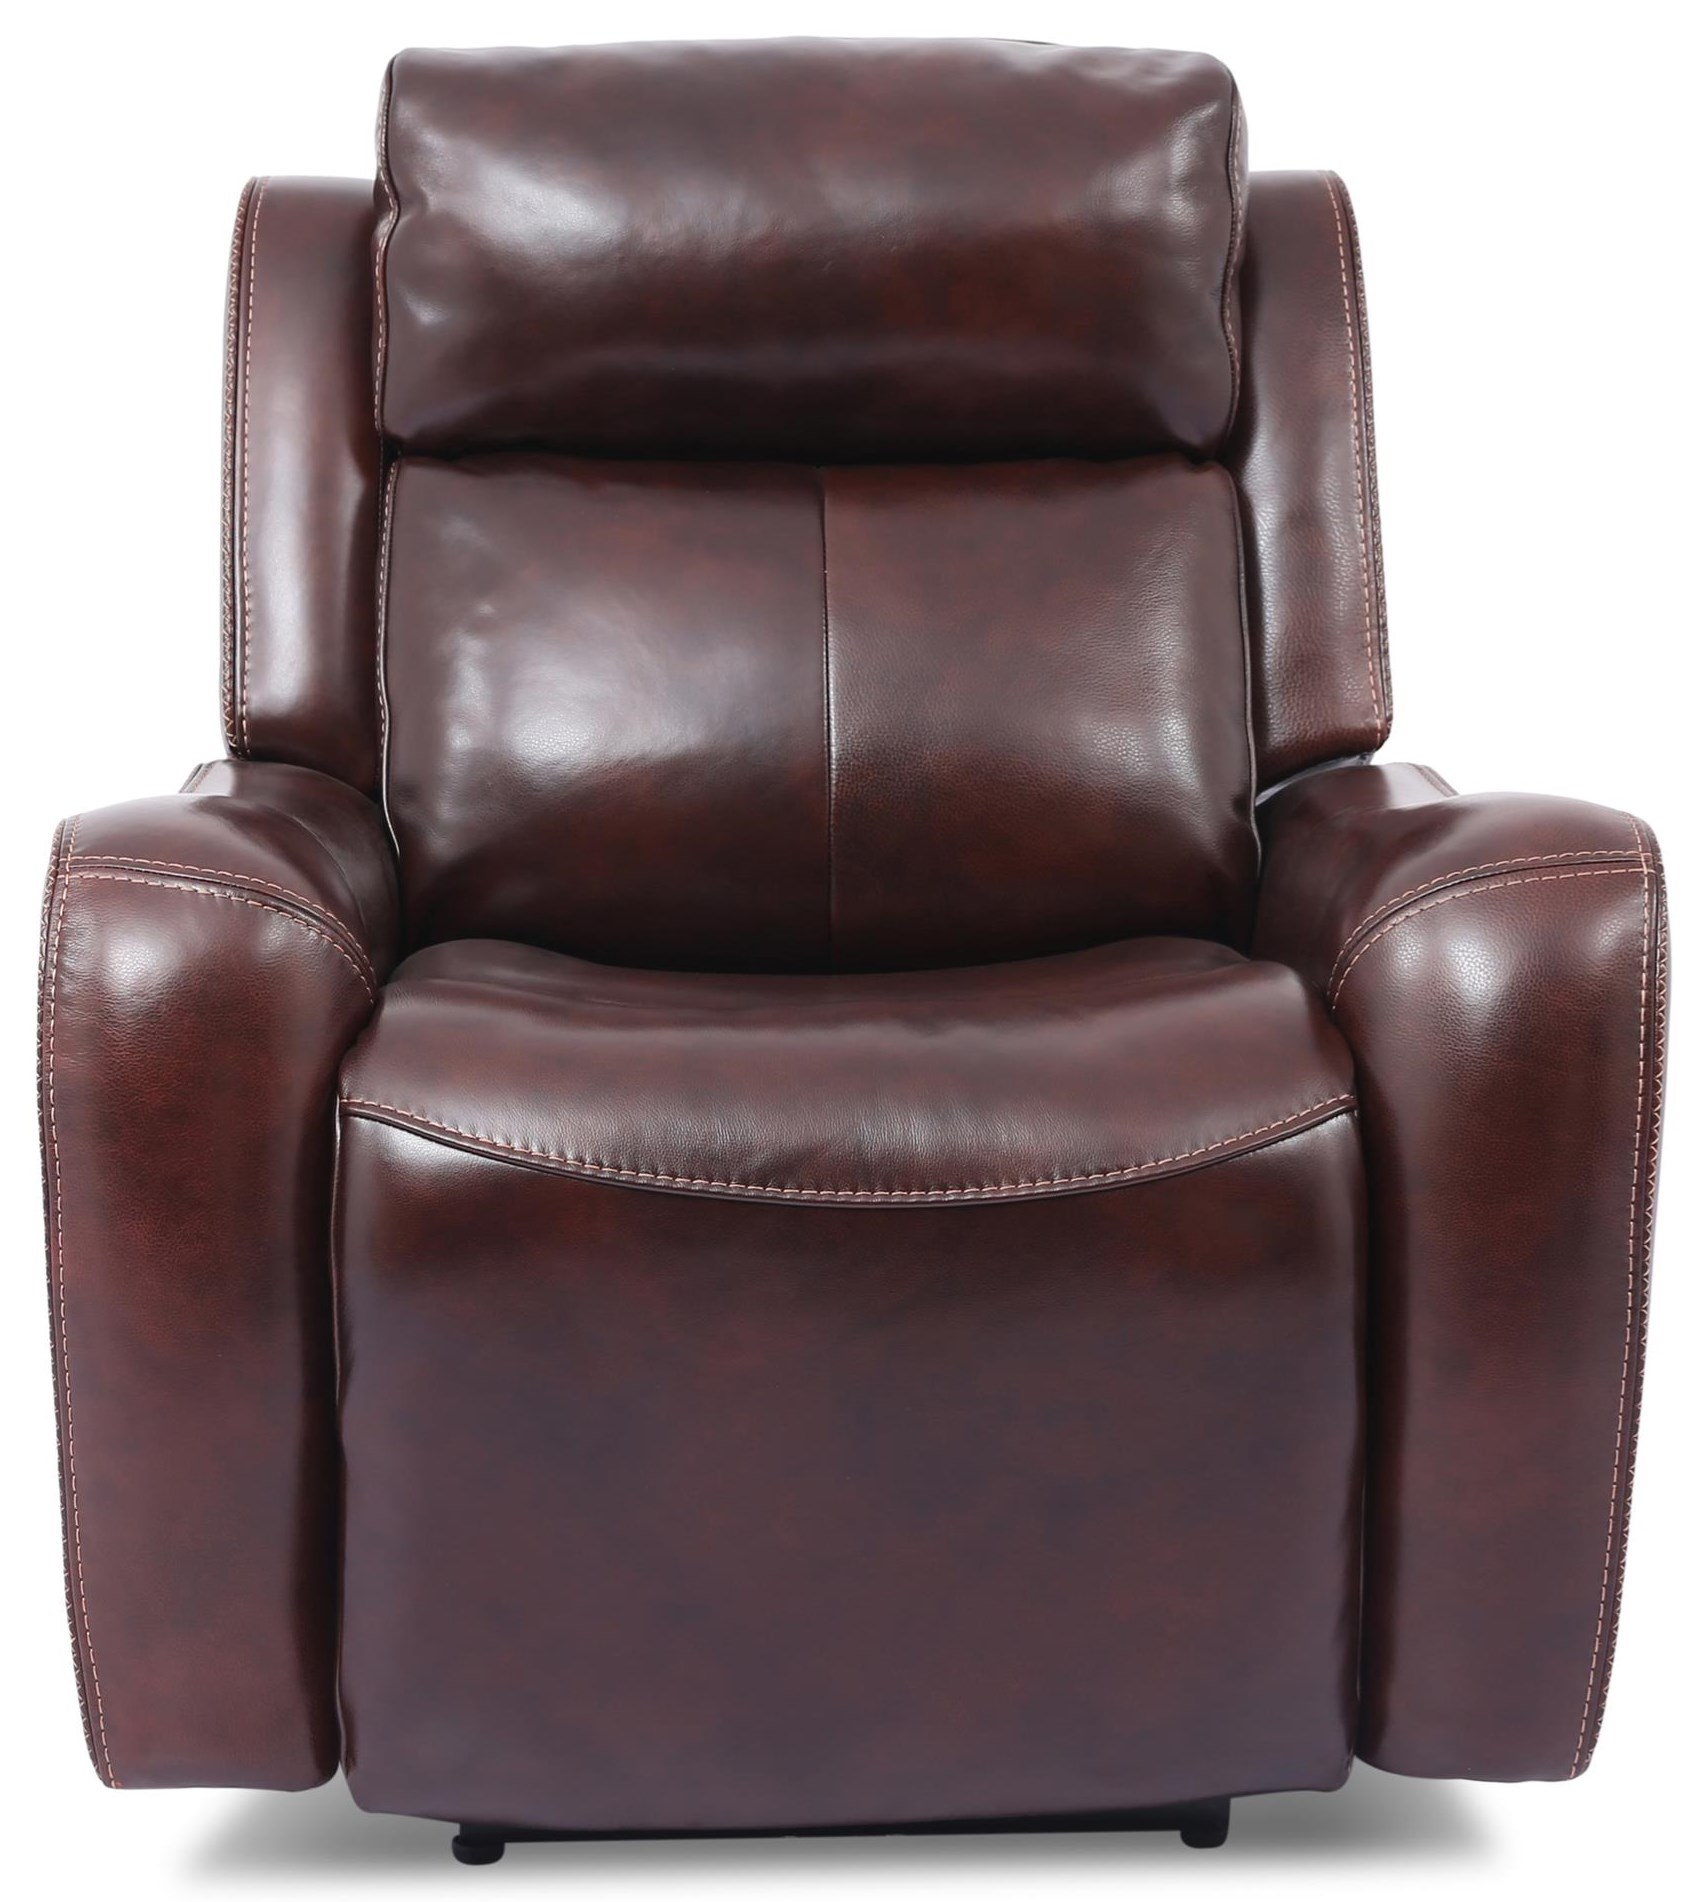 70093 Power Recliner by Cheers at Beck's Furniture